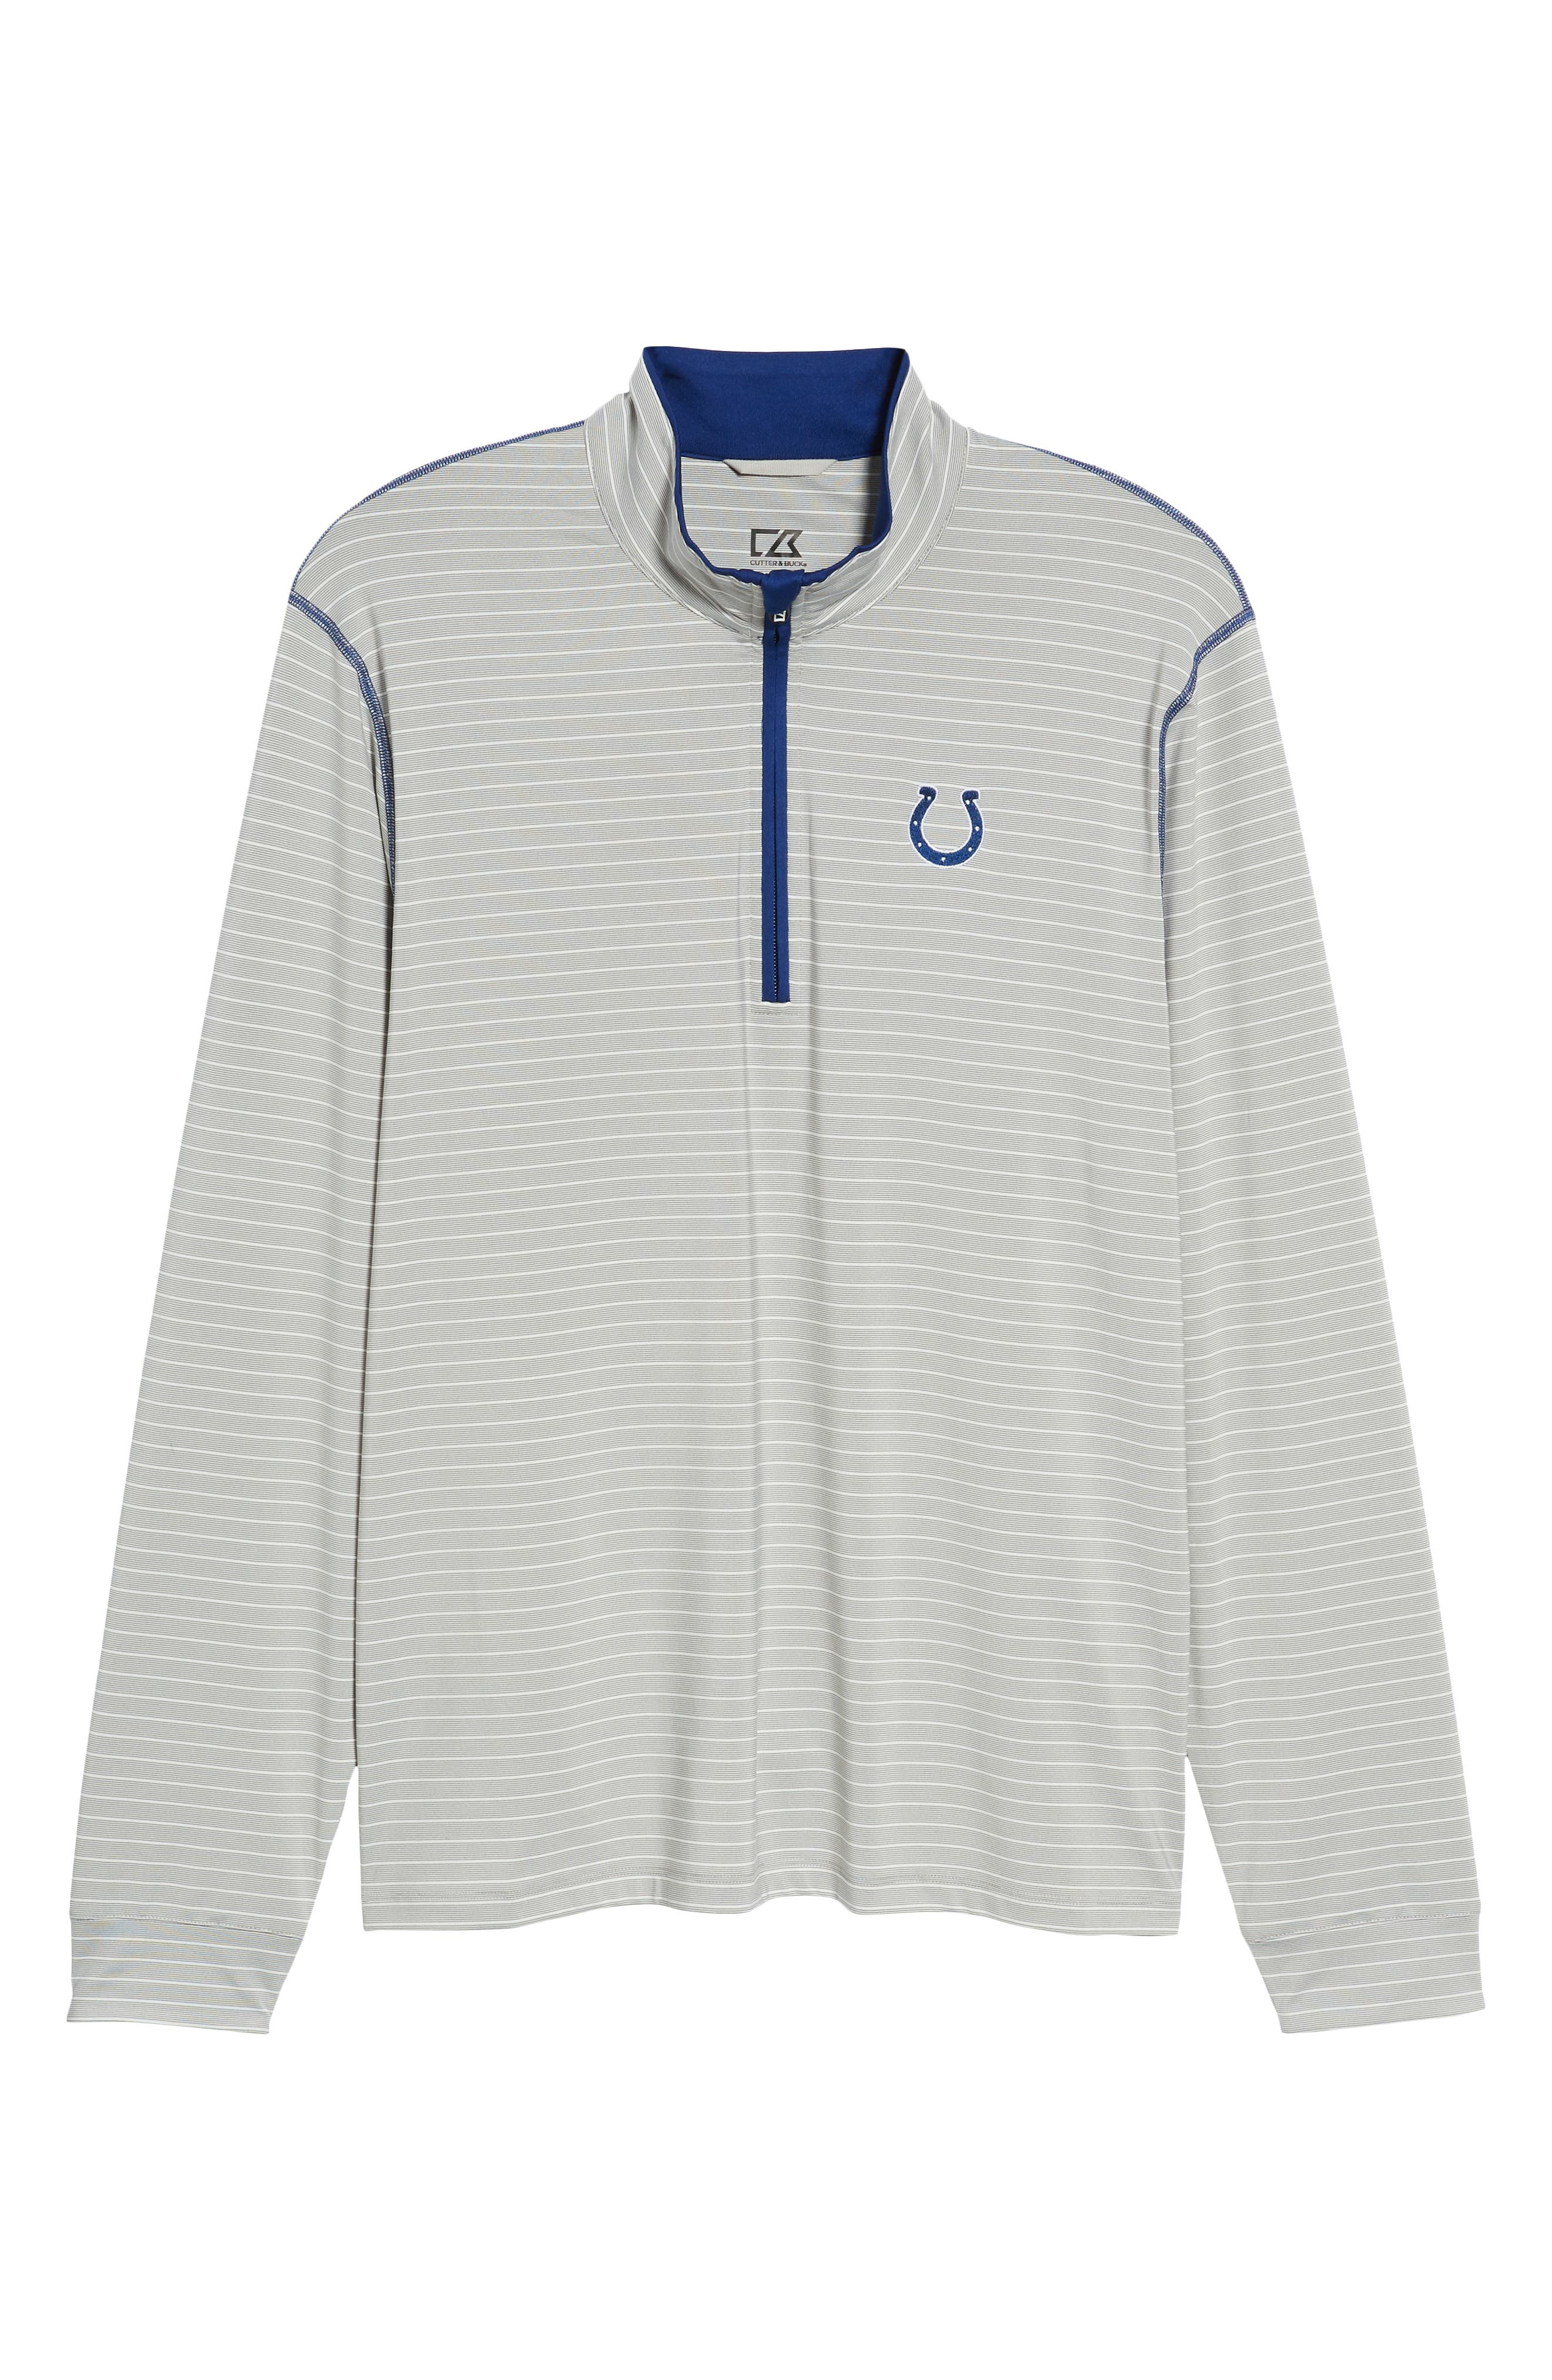 Meridian - Indianapolis Colts Regular Fit Half Zip Pullover,                             Alternate thumbnail 6, color,                             TOUR BLUE